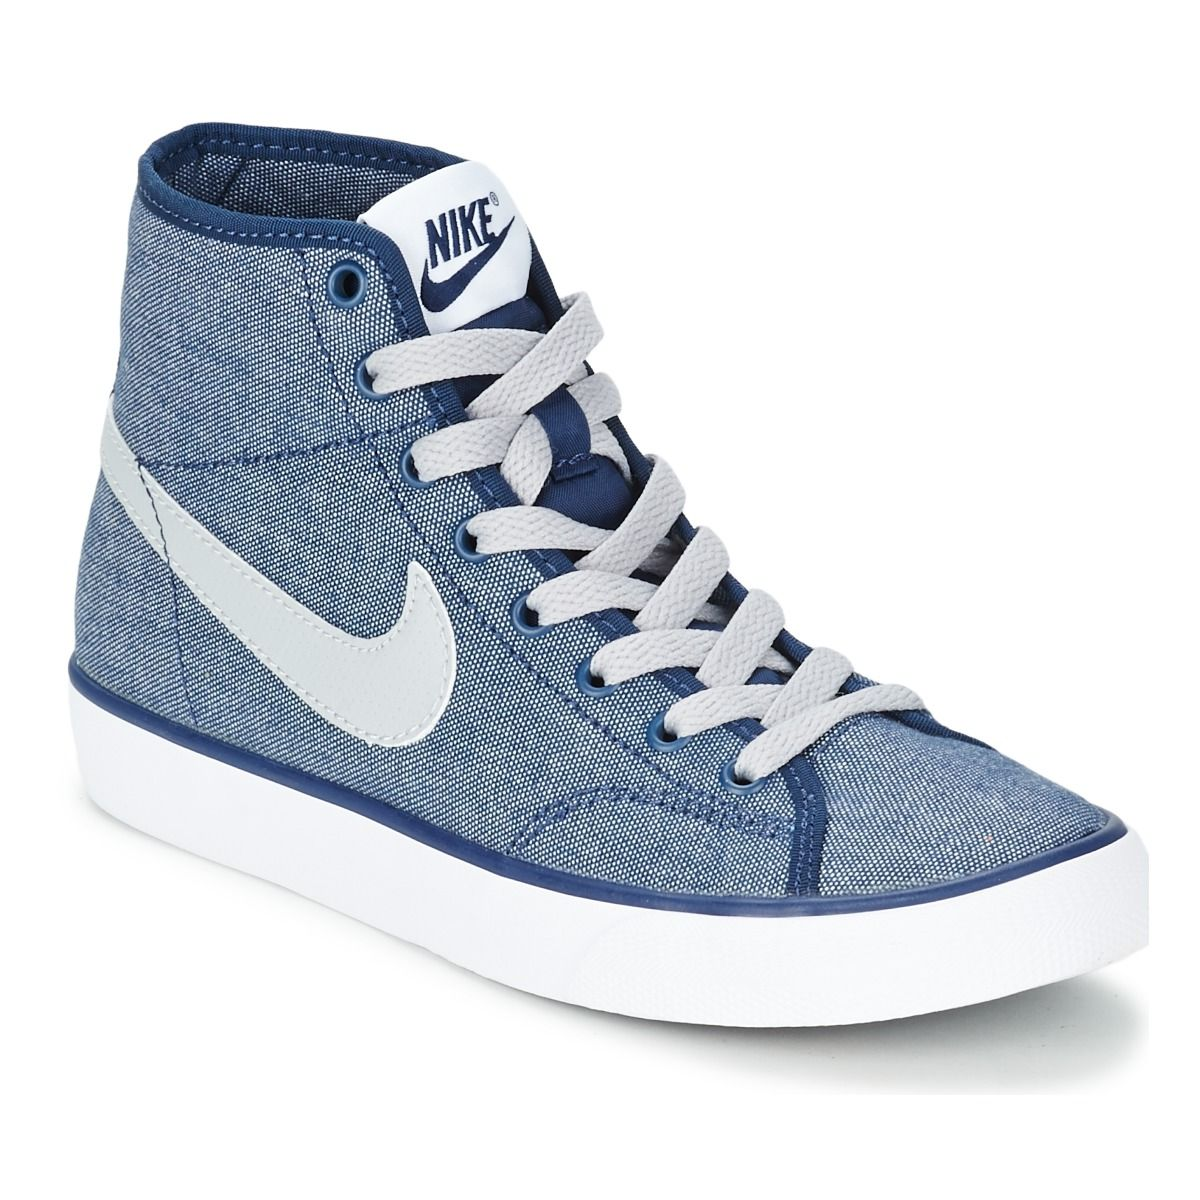 Trends For > Nike Shoes For Girls High Tops Black And ...